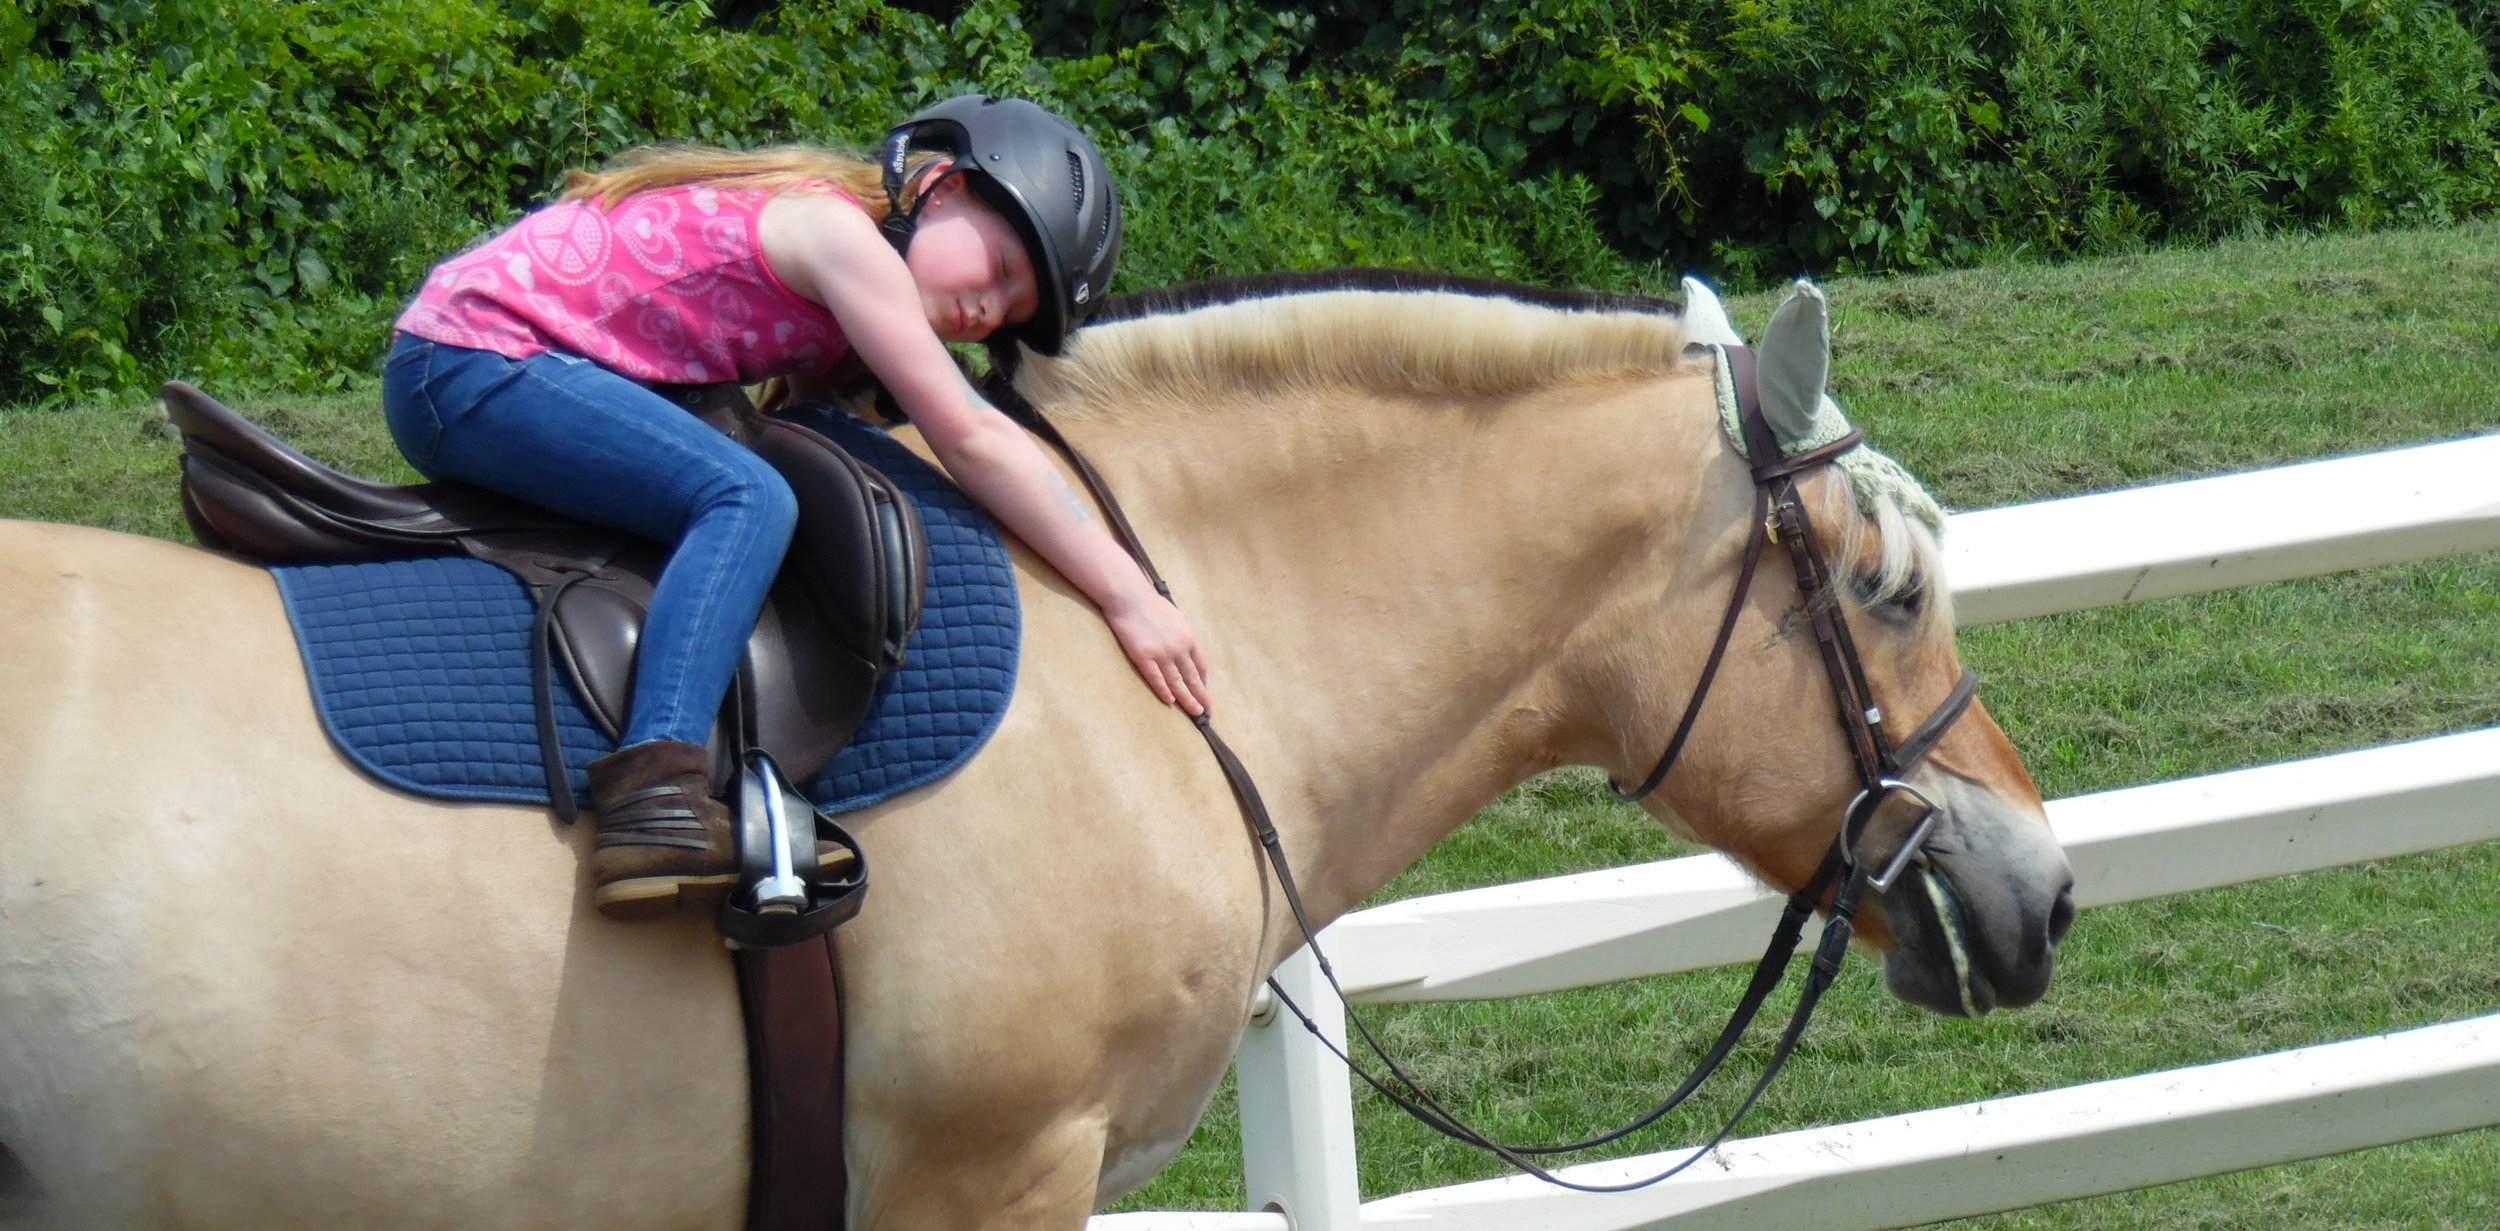 We're sure your child will make connnections with our horses just like this.